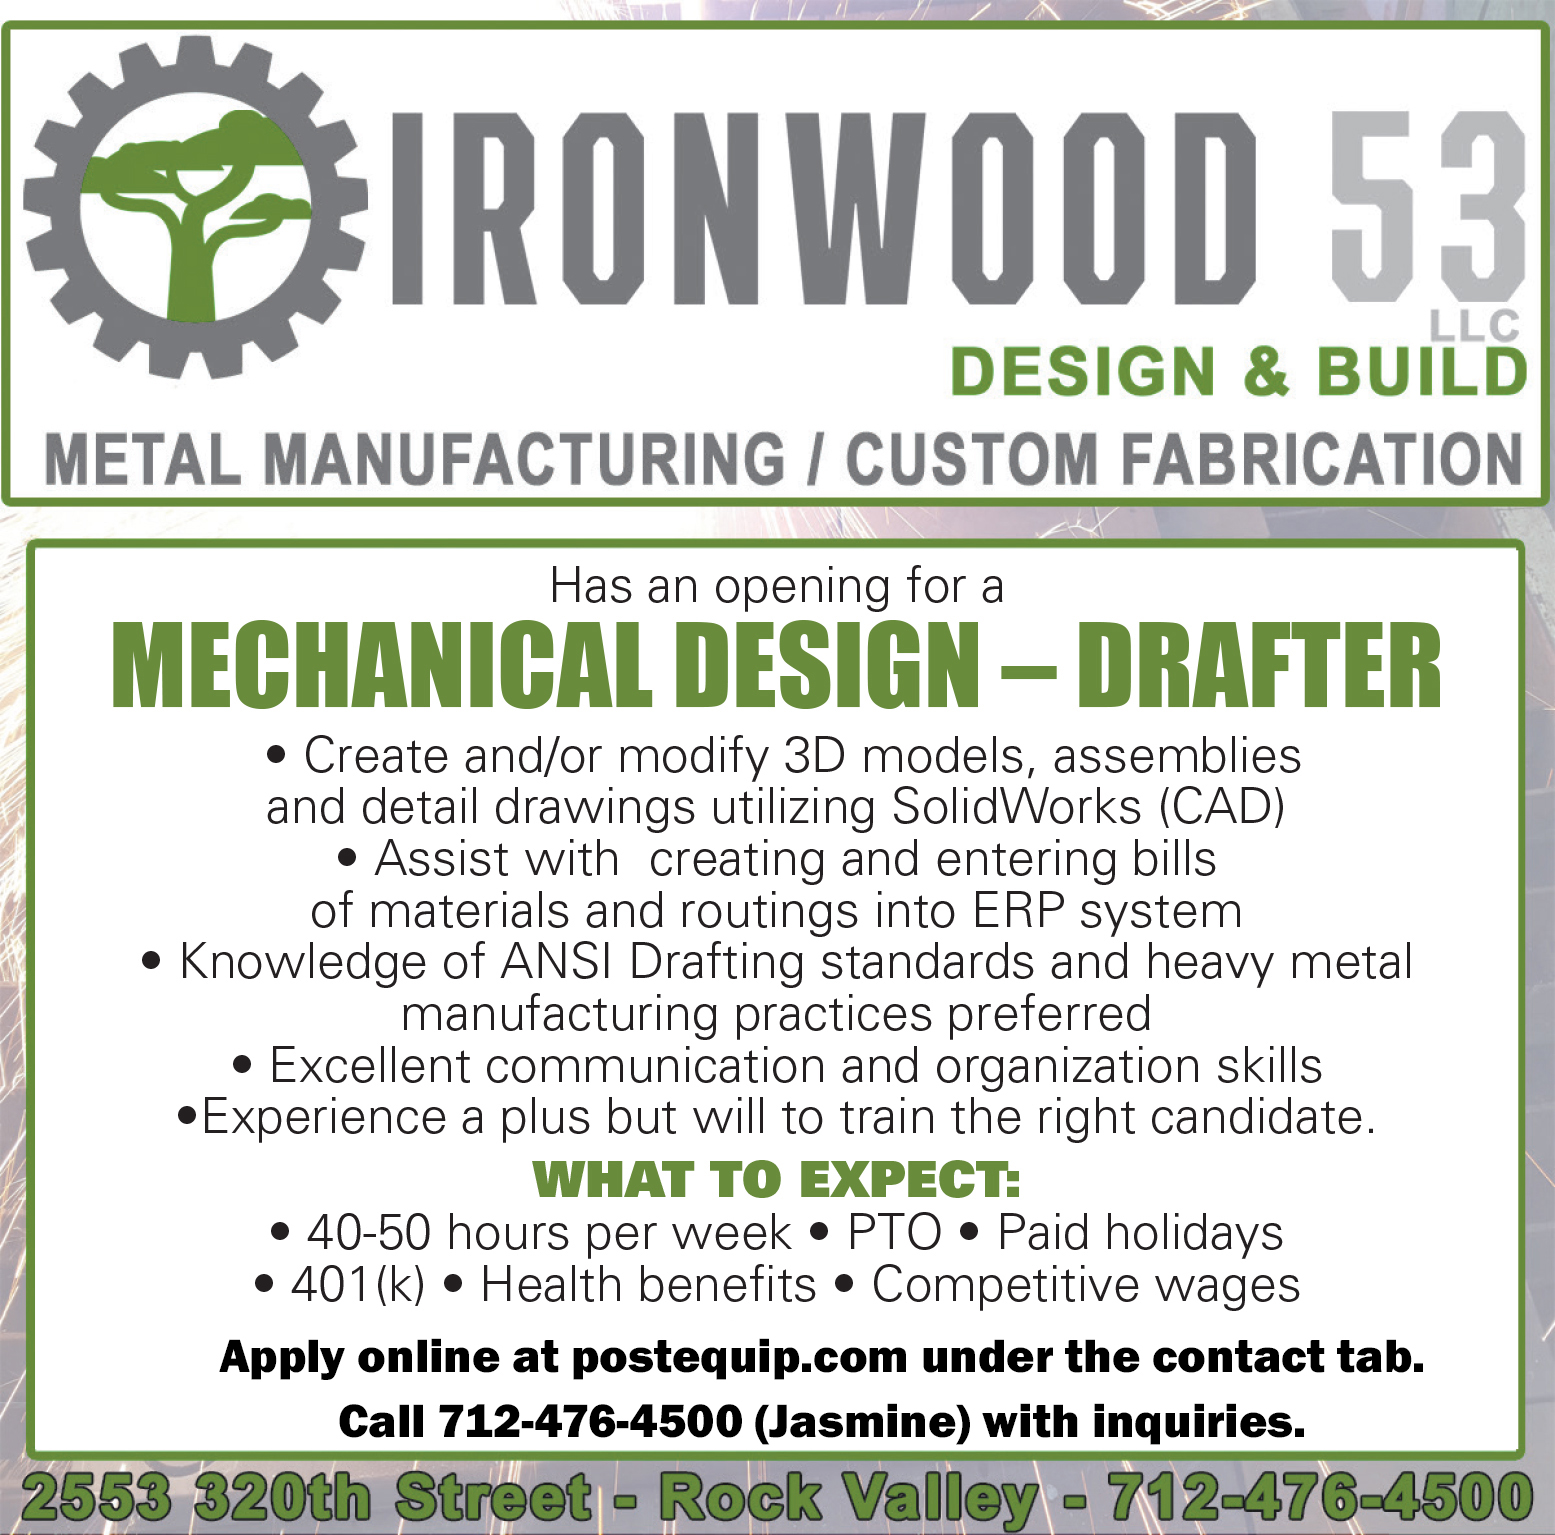 Help Wanted - Drafter for Ironwood 53